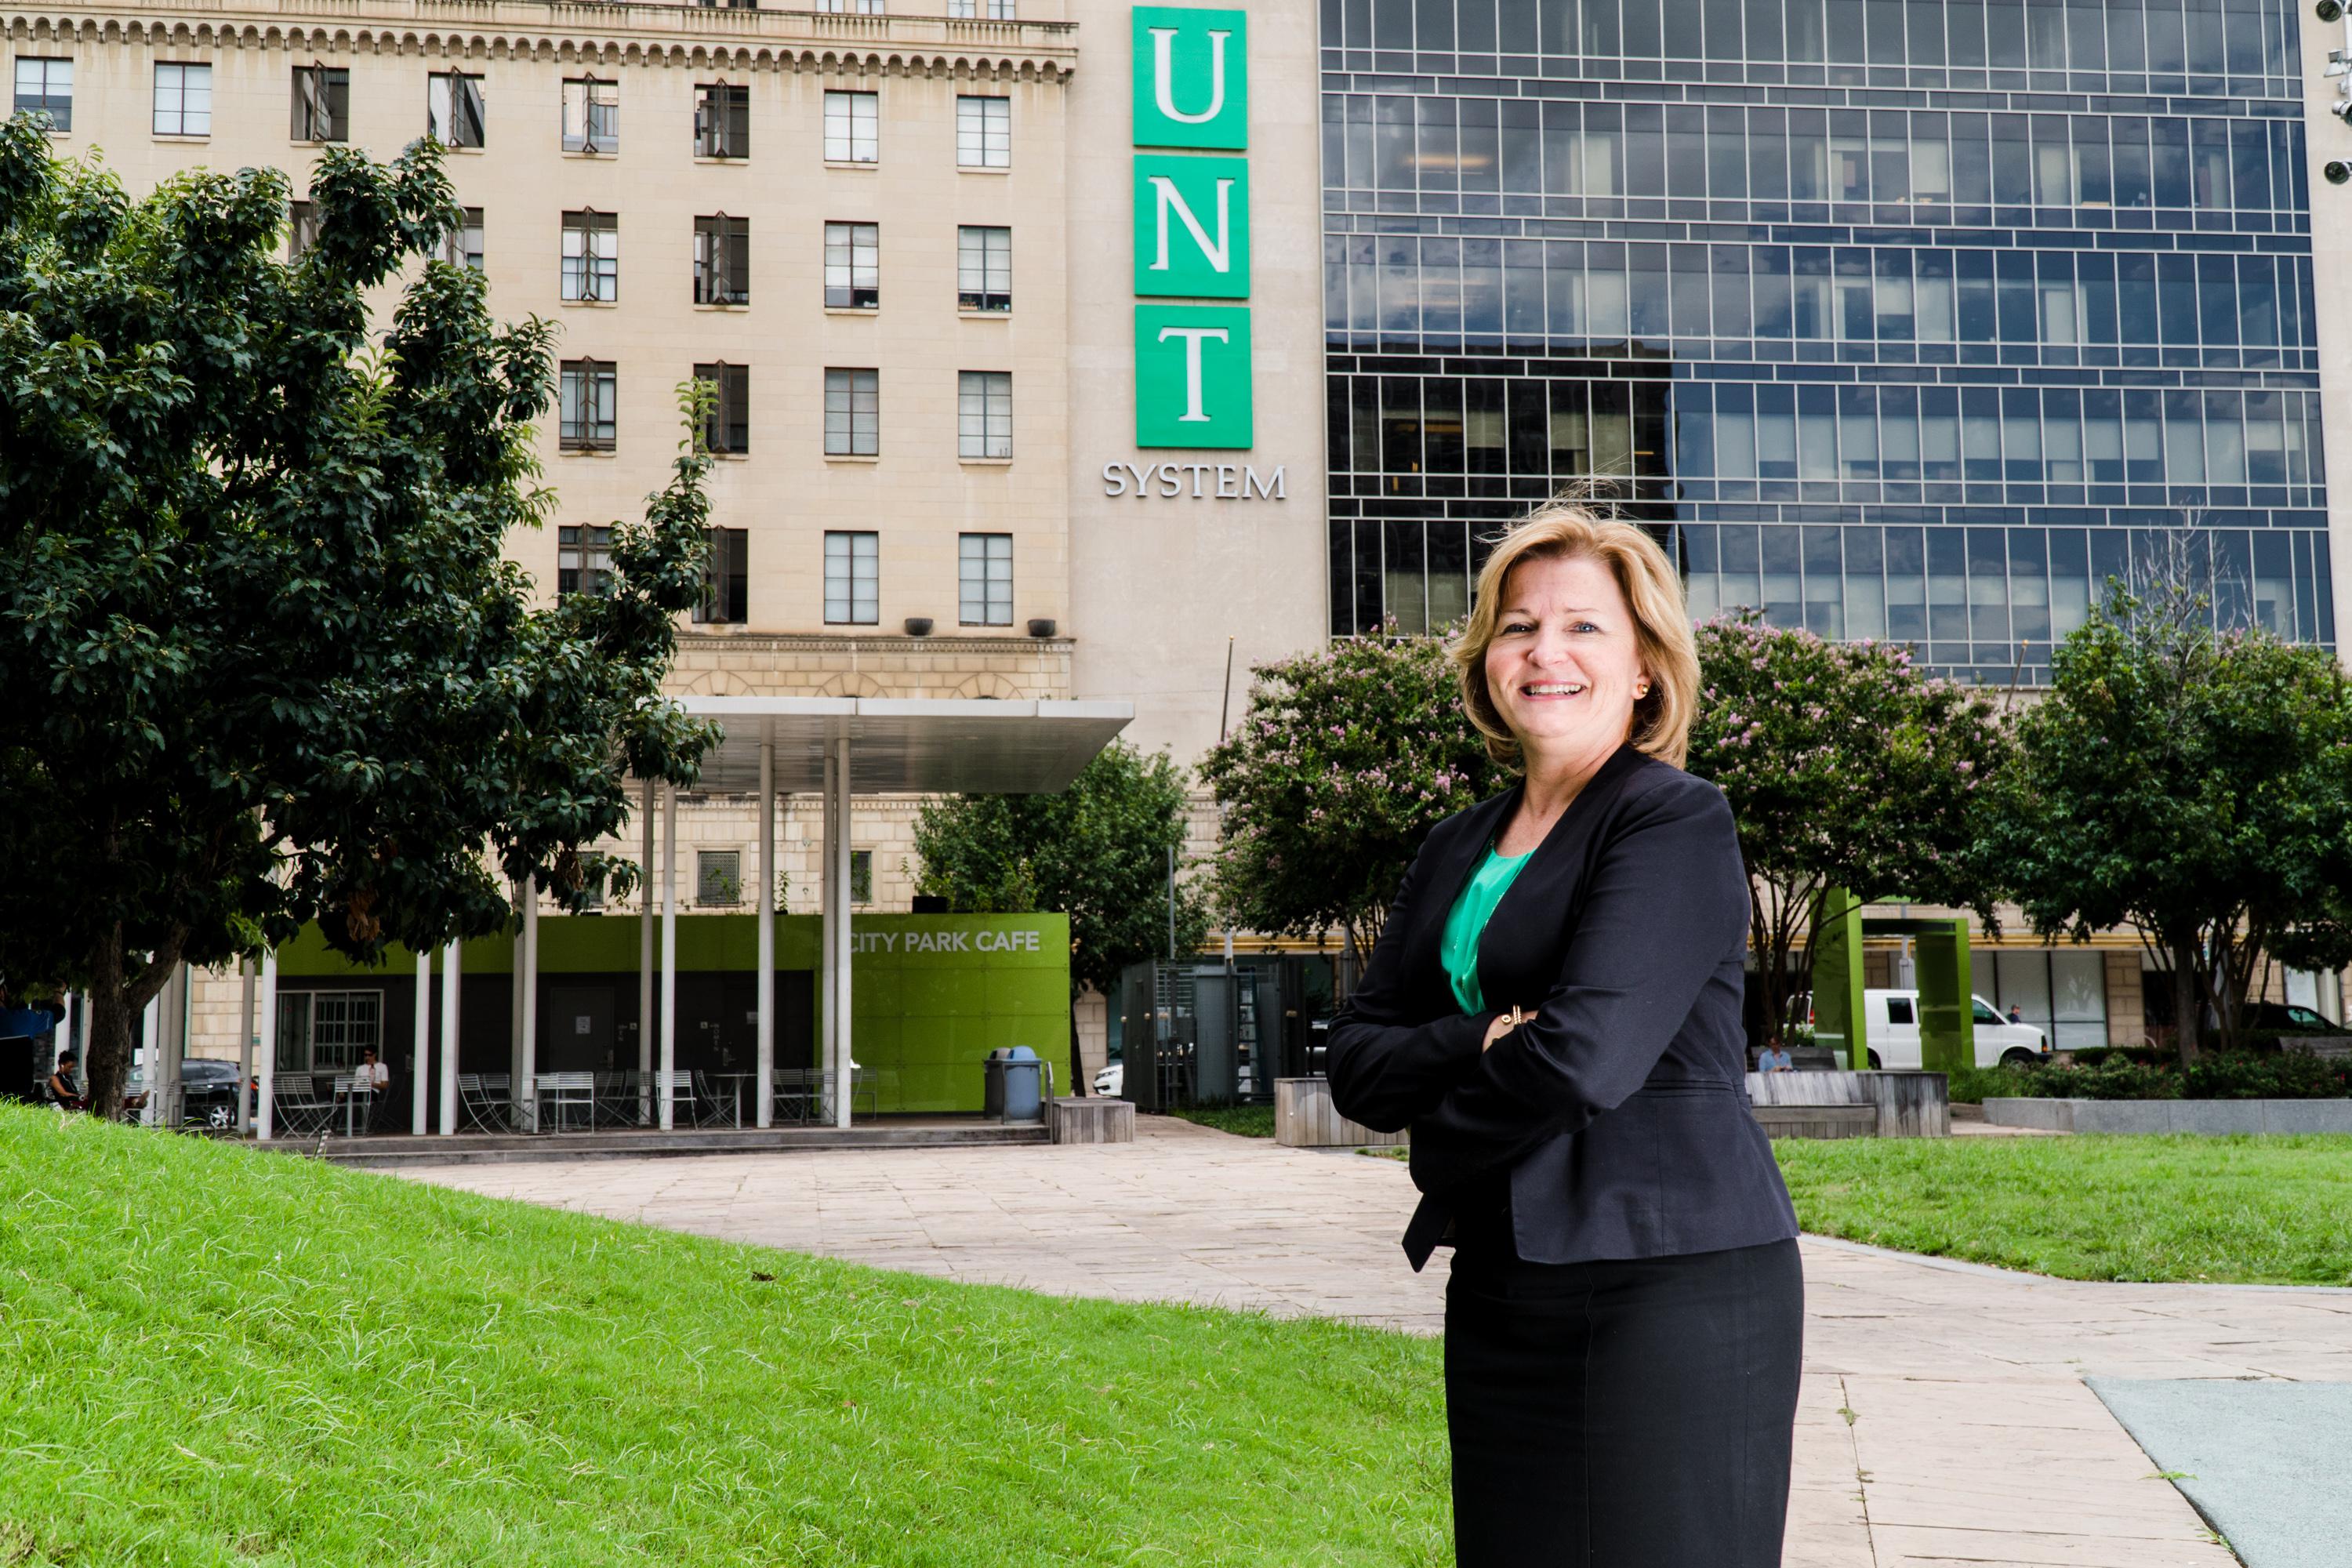 NASA's Deputy Chief Operating Officer, Lesa B. Roe, named sole finalist for UNT System Chancellor position